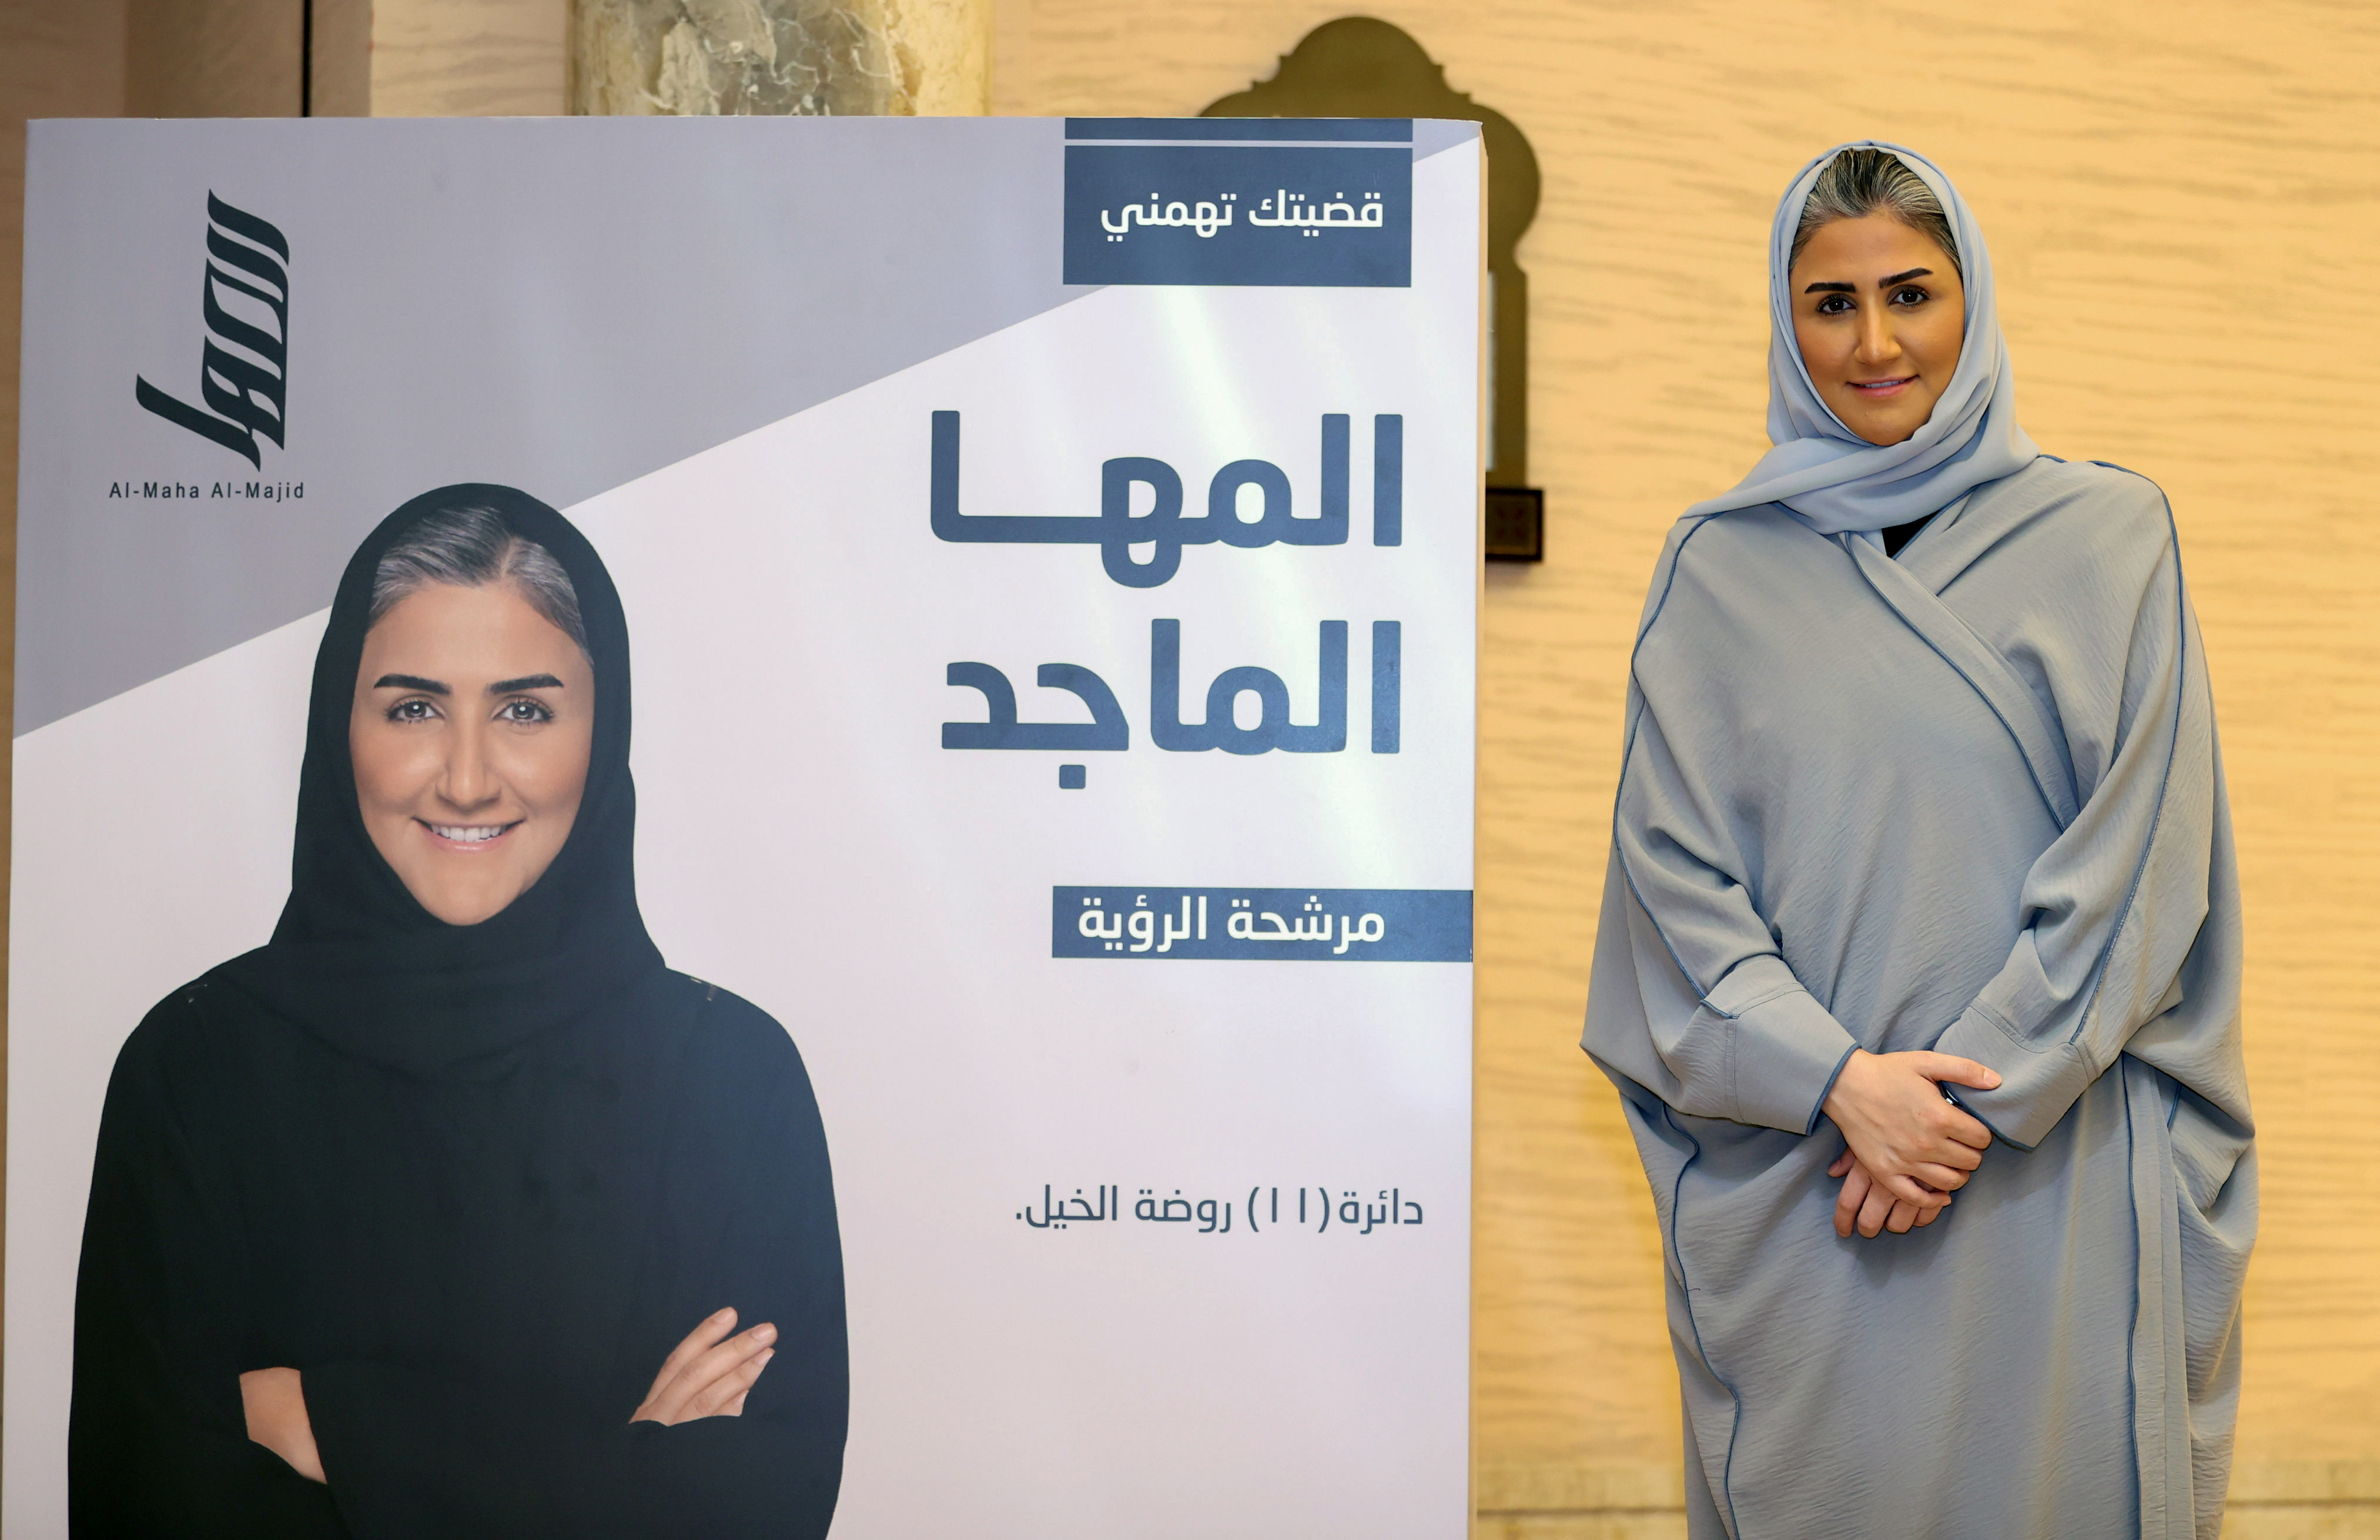 Al-Maha Al-Majid, a candidate in Qatar's Shura Council election, poses for a photo next to an election poster in Doha, Qatar September 30, 2021. REUTERS/Ibraheem Al Omari